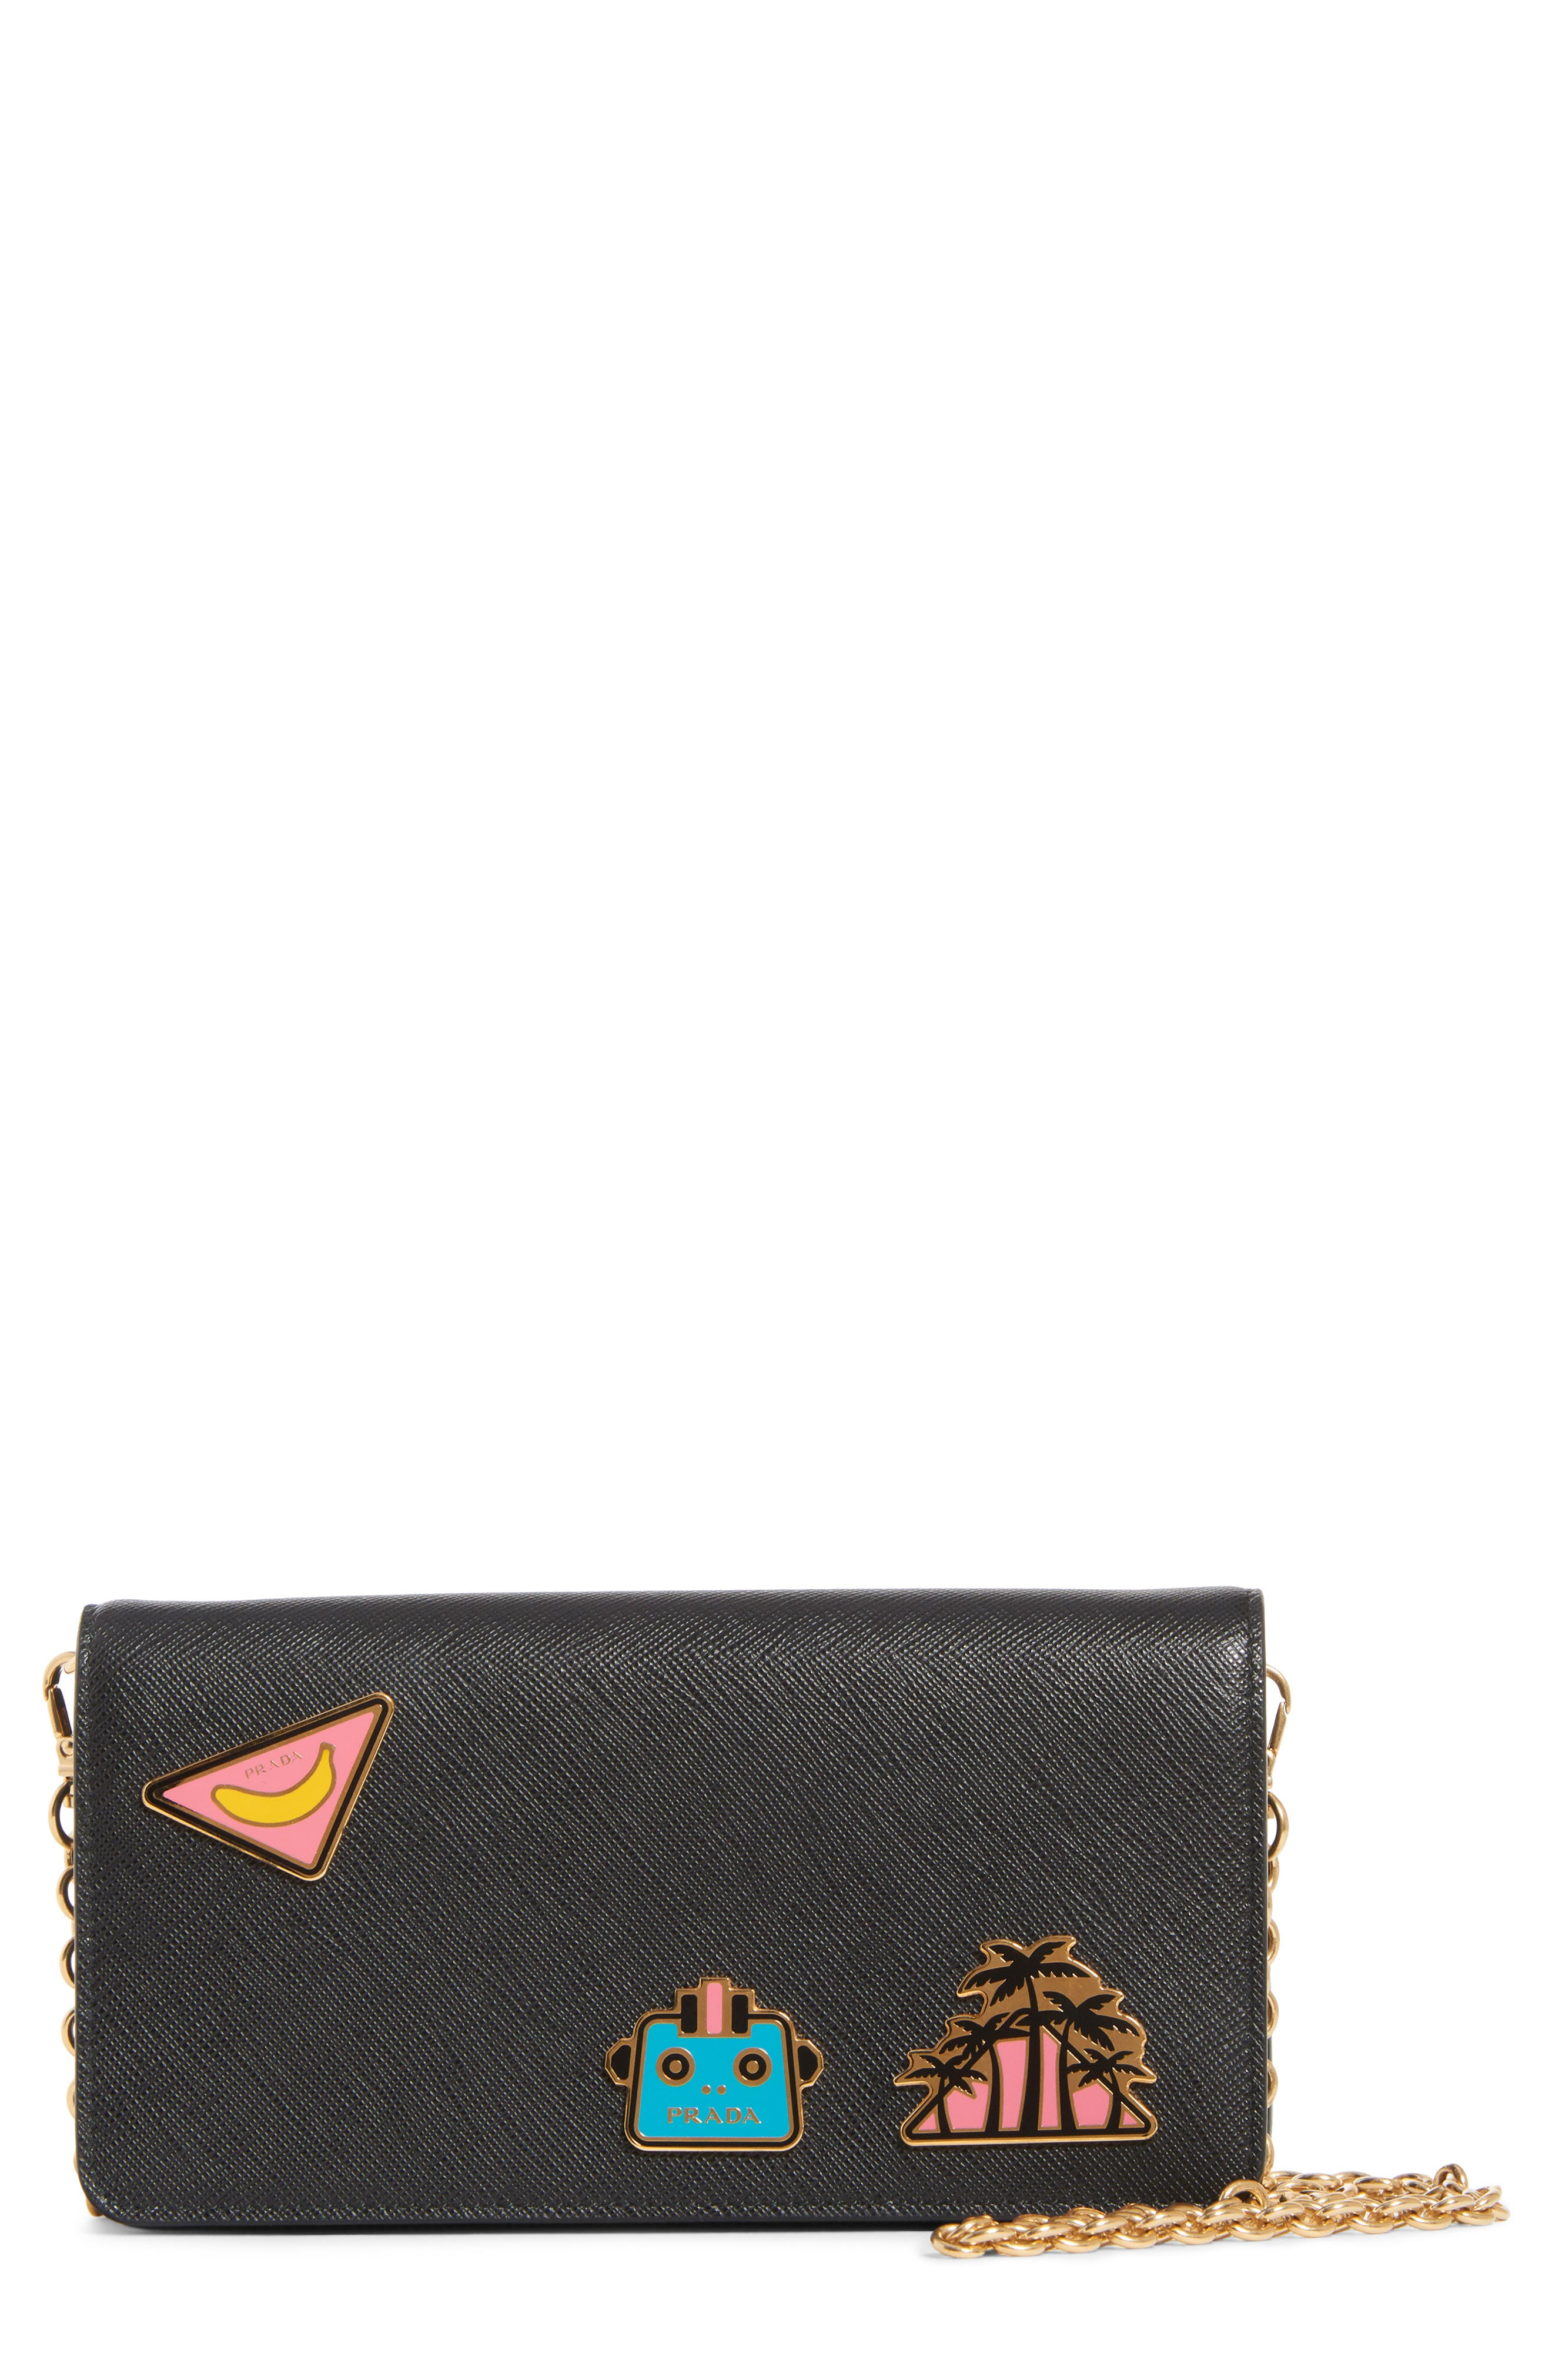 Embellished Saffiano Leather Wallet on a Chain,                         Main,                         color, NERO/ FUOCO